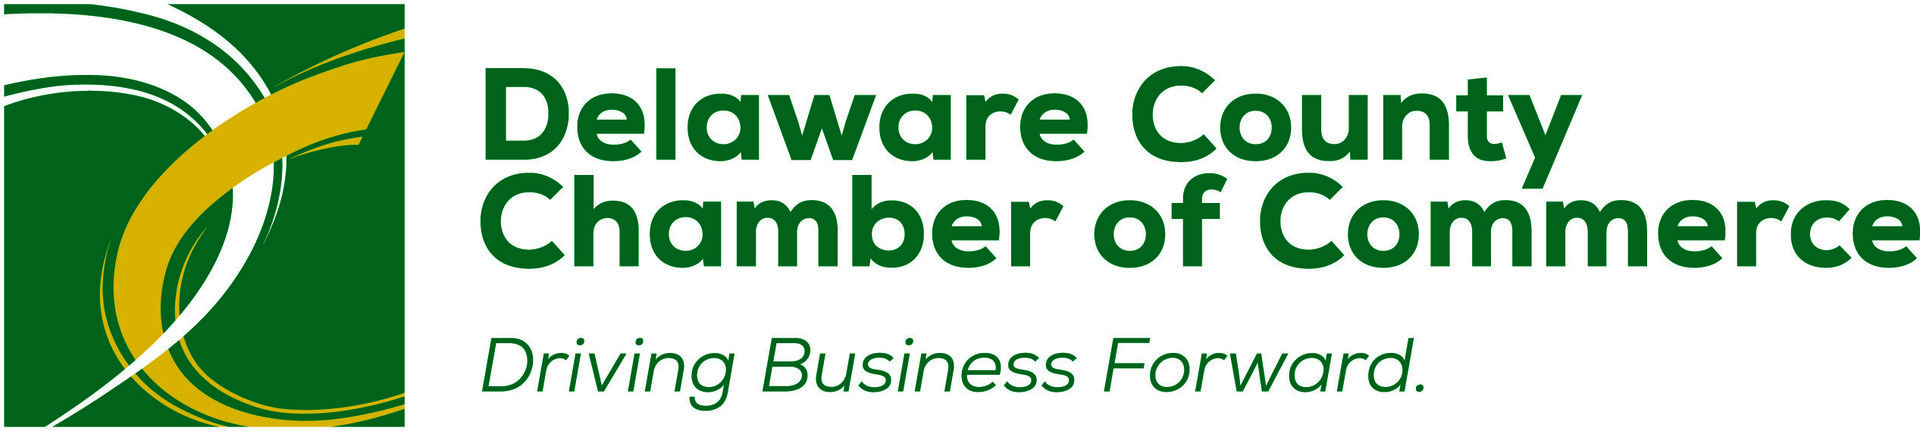 Delaware county of chamber of commerce